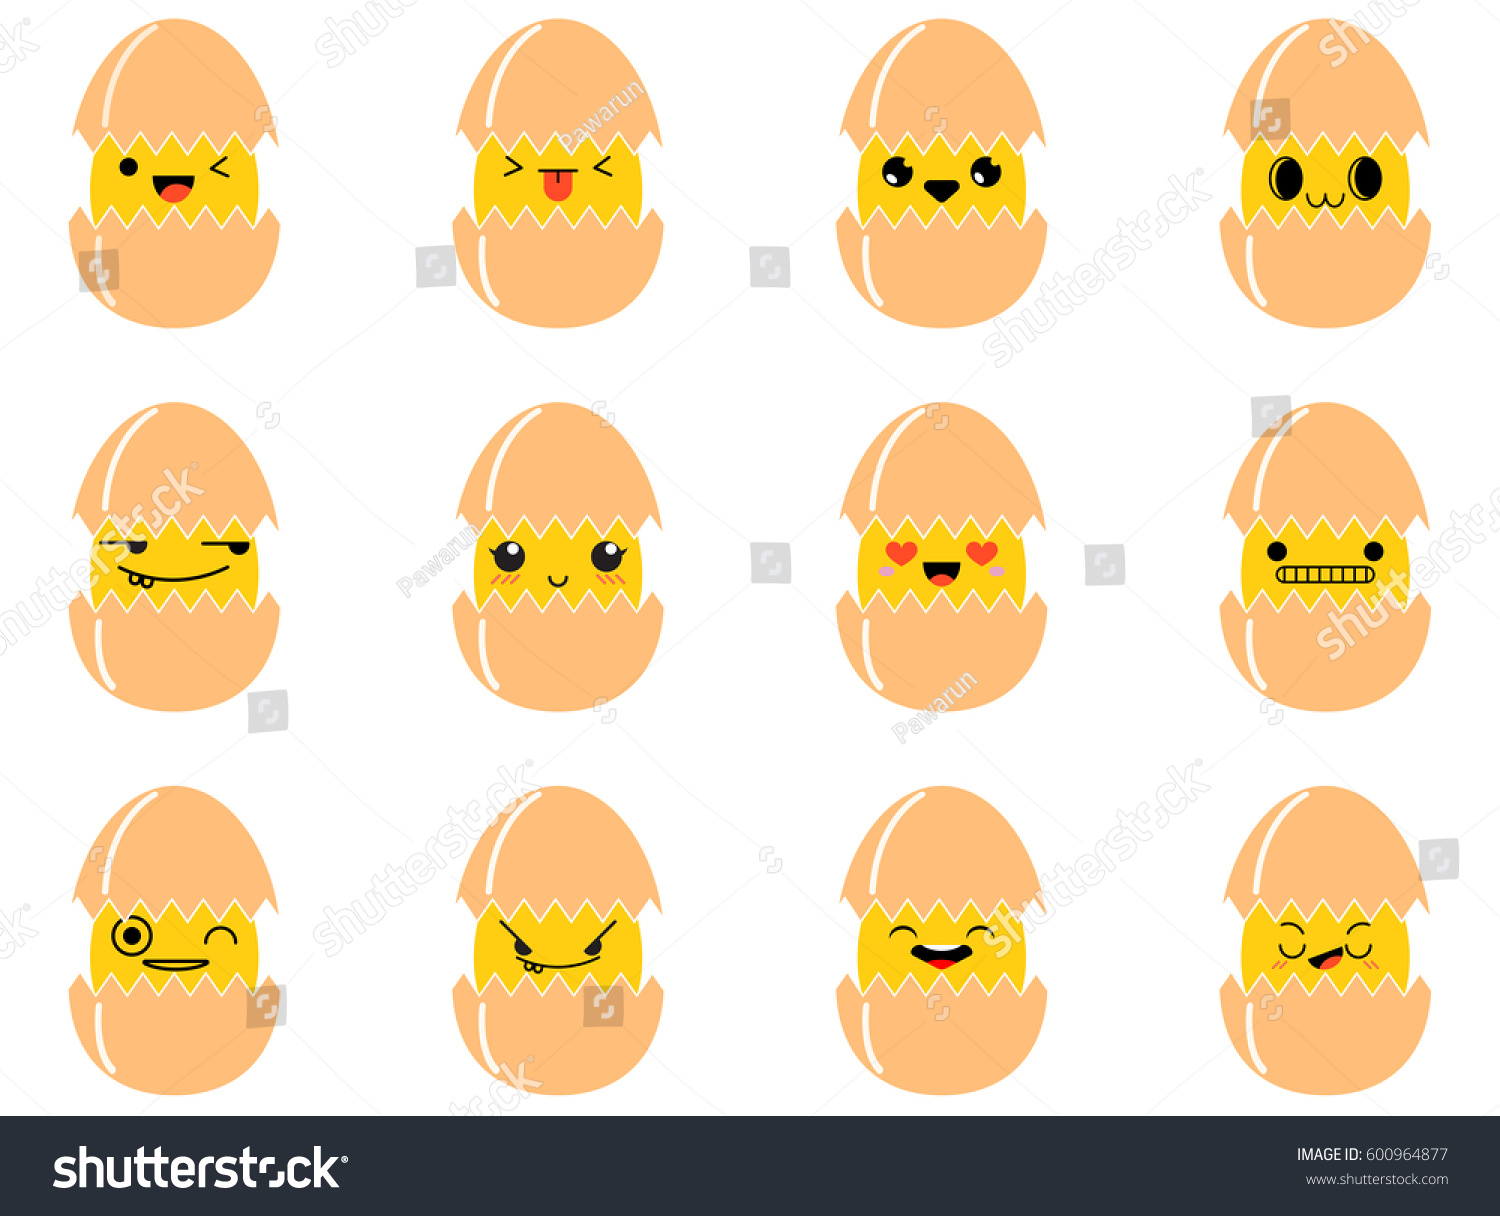 Eggs cute emoji emoticons faces set stock vector 600964877 eggs cute emoji emoticons faces set buycottarizona Images